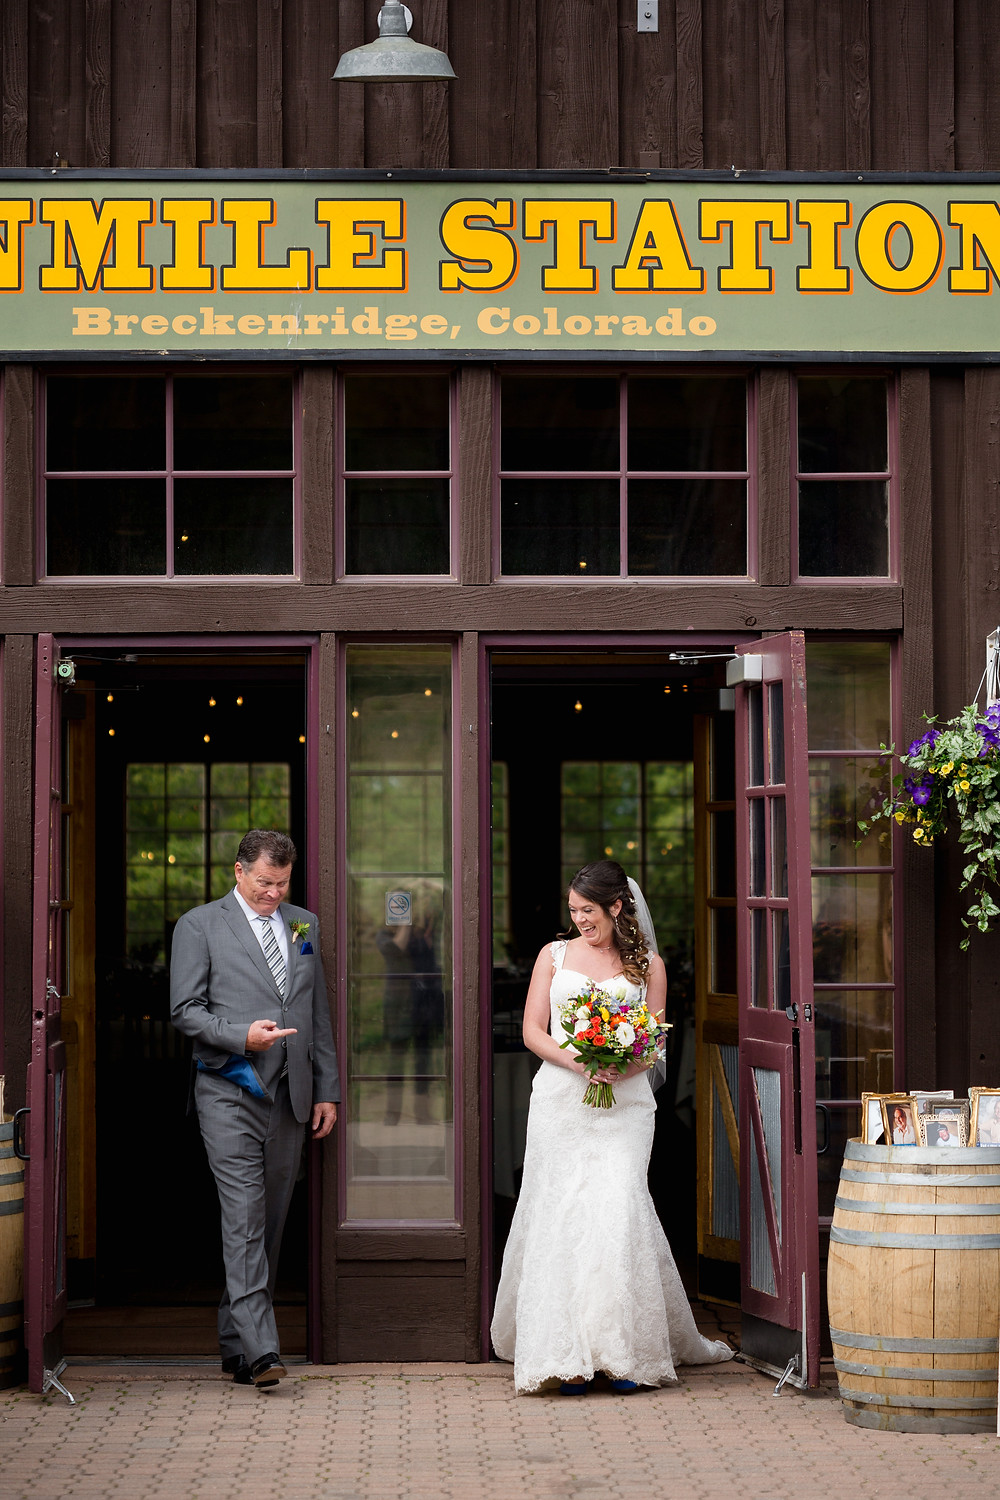 Breckenridge Wedding - Ten Mile Station Wedding - Father Daughter